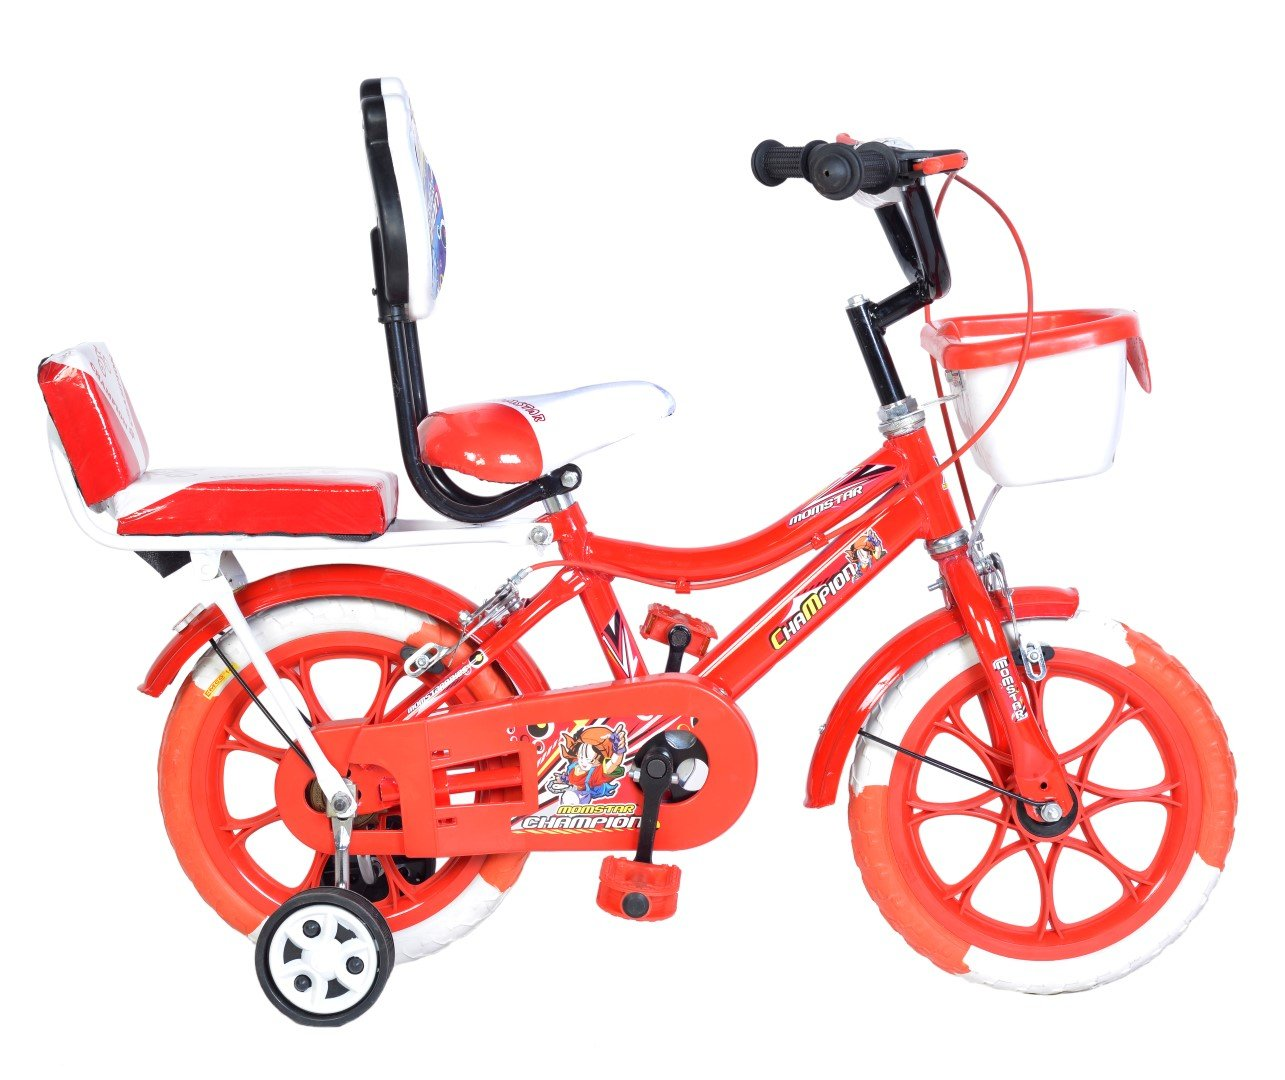 ORBIS CyclesⓇ Momstar Champion 14 inches Single Speed Recreation Bike for Kids